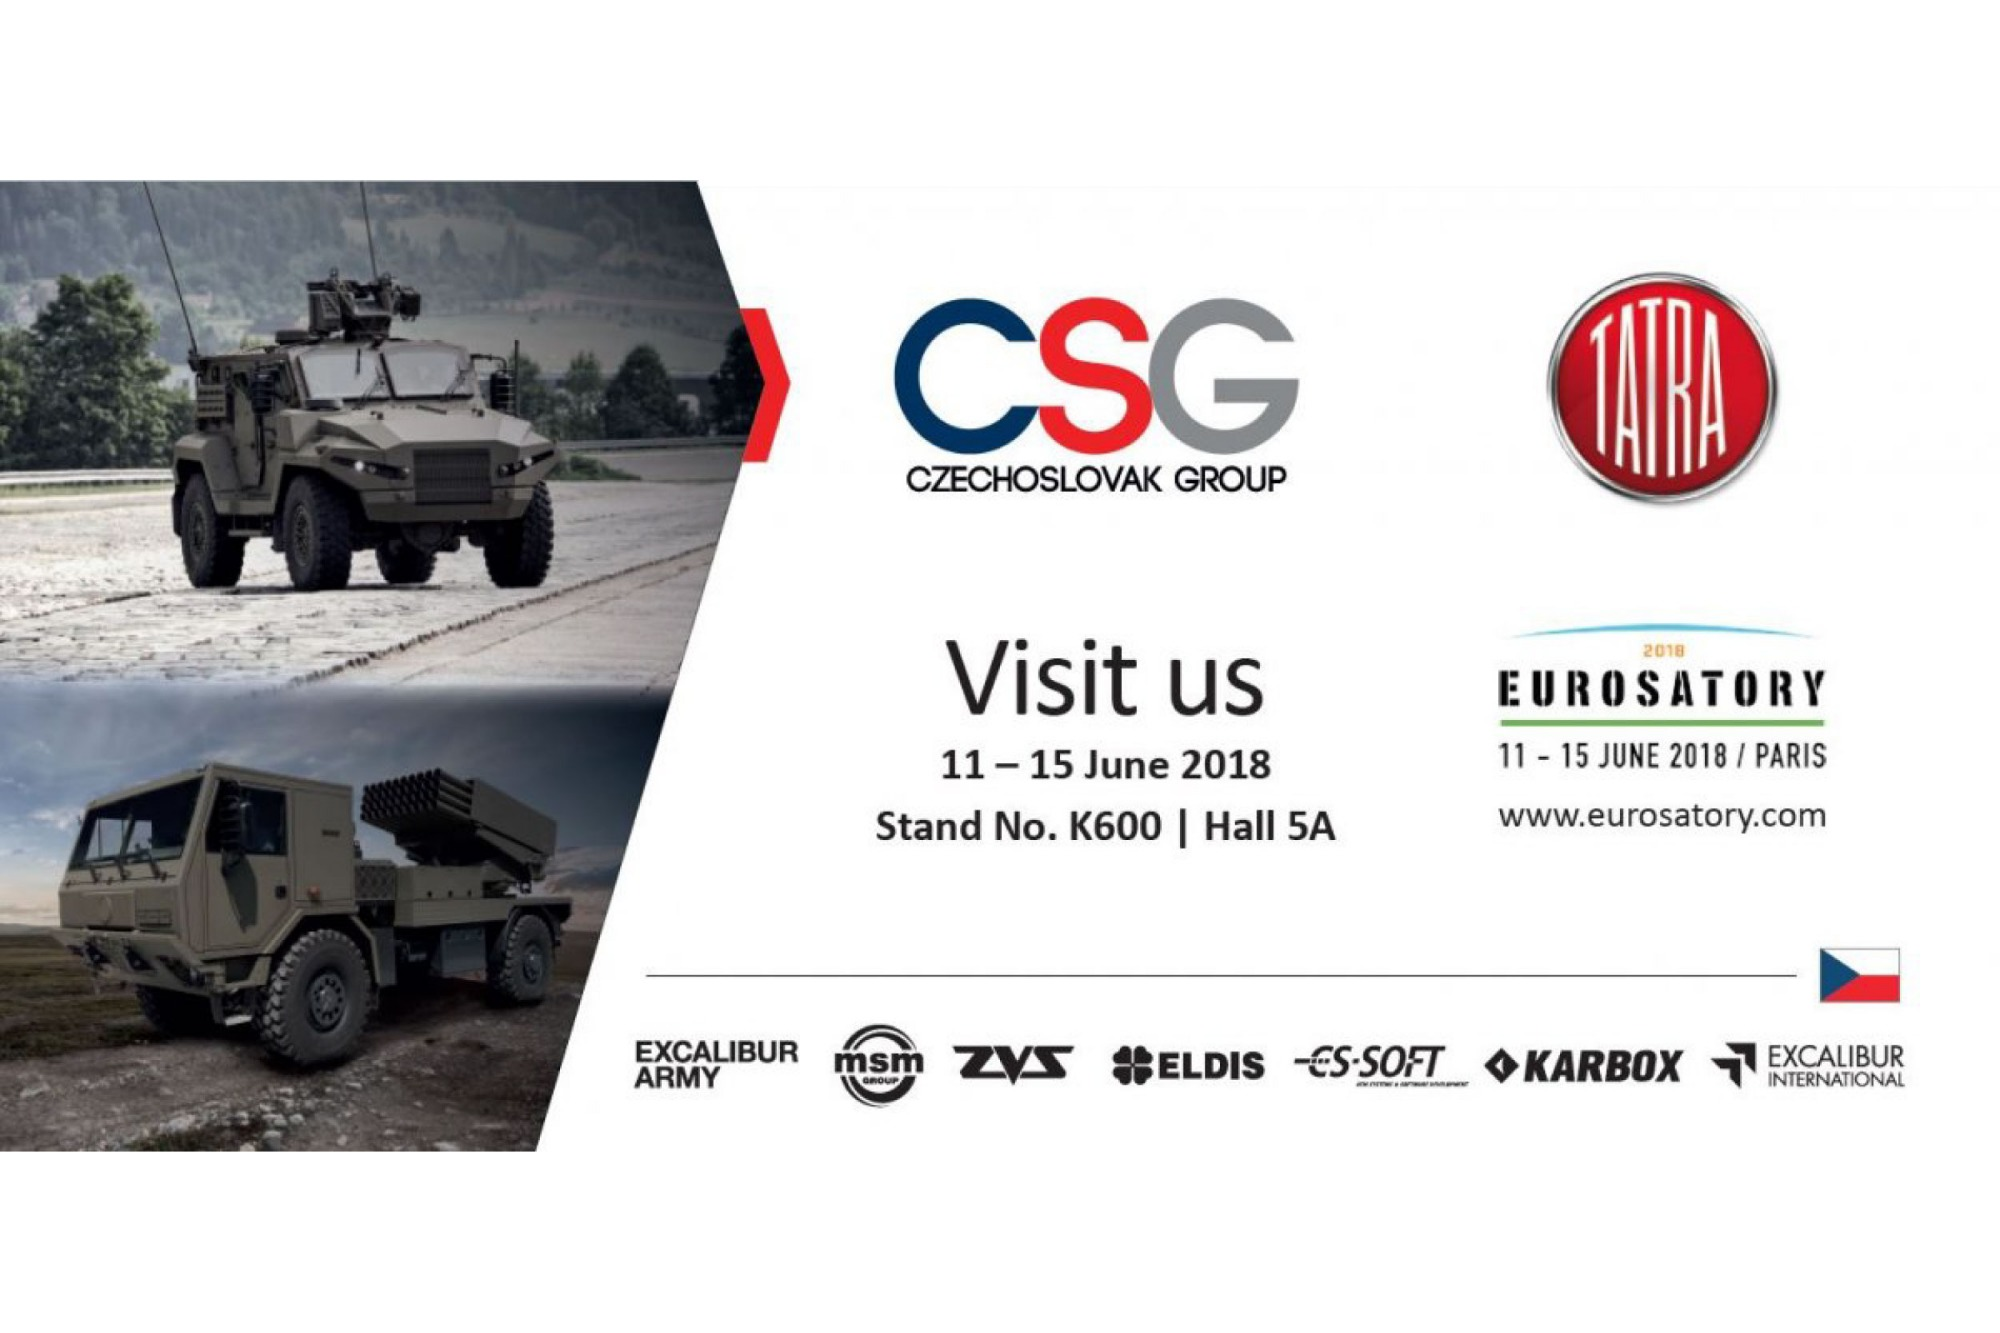 Companies of the holding CZECHOSLOVAK GROUP and TATRA TRUCKS invite you to Eurosatory 2018